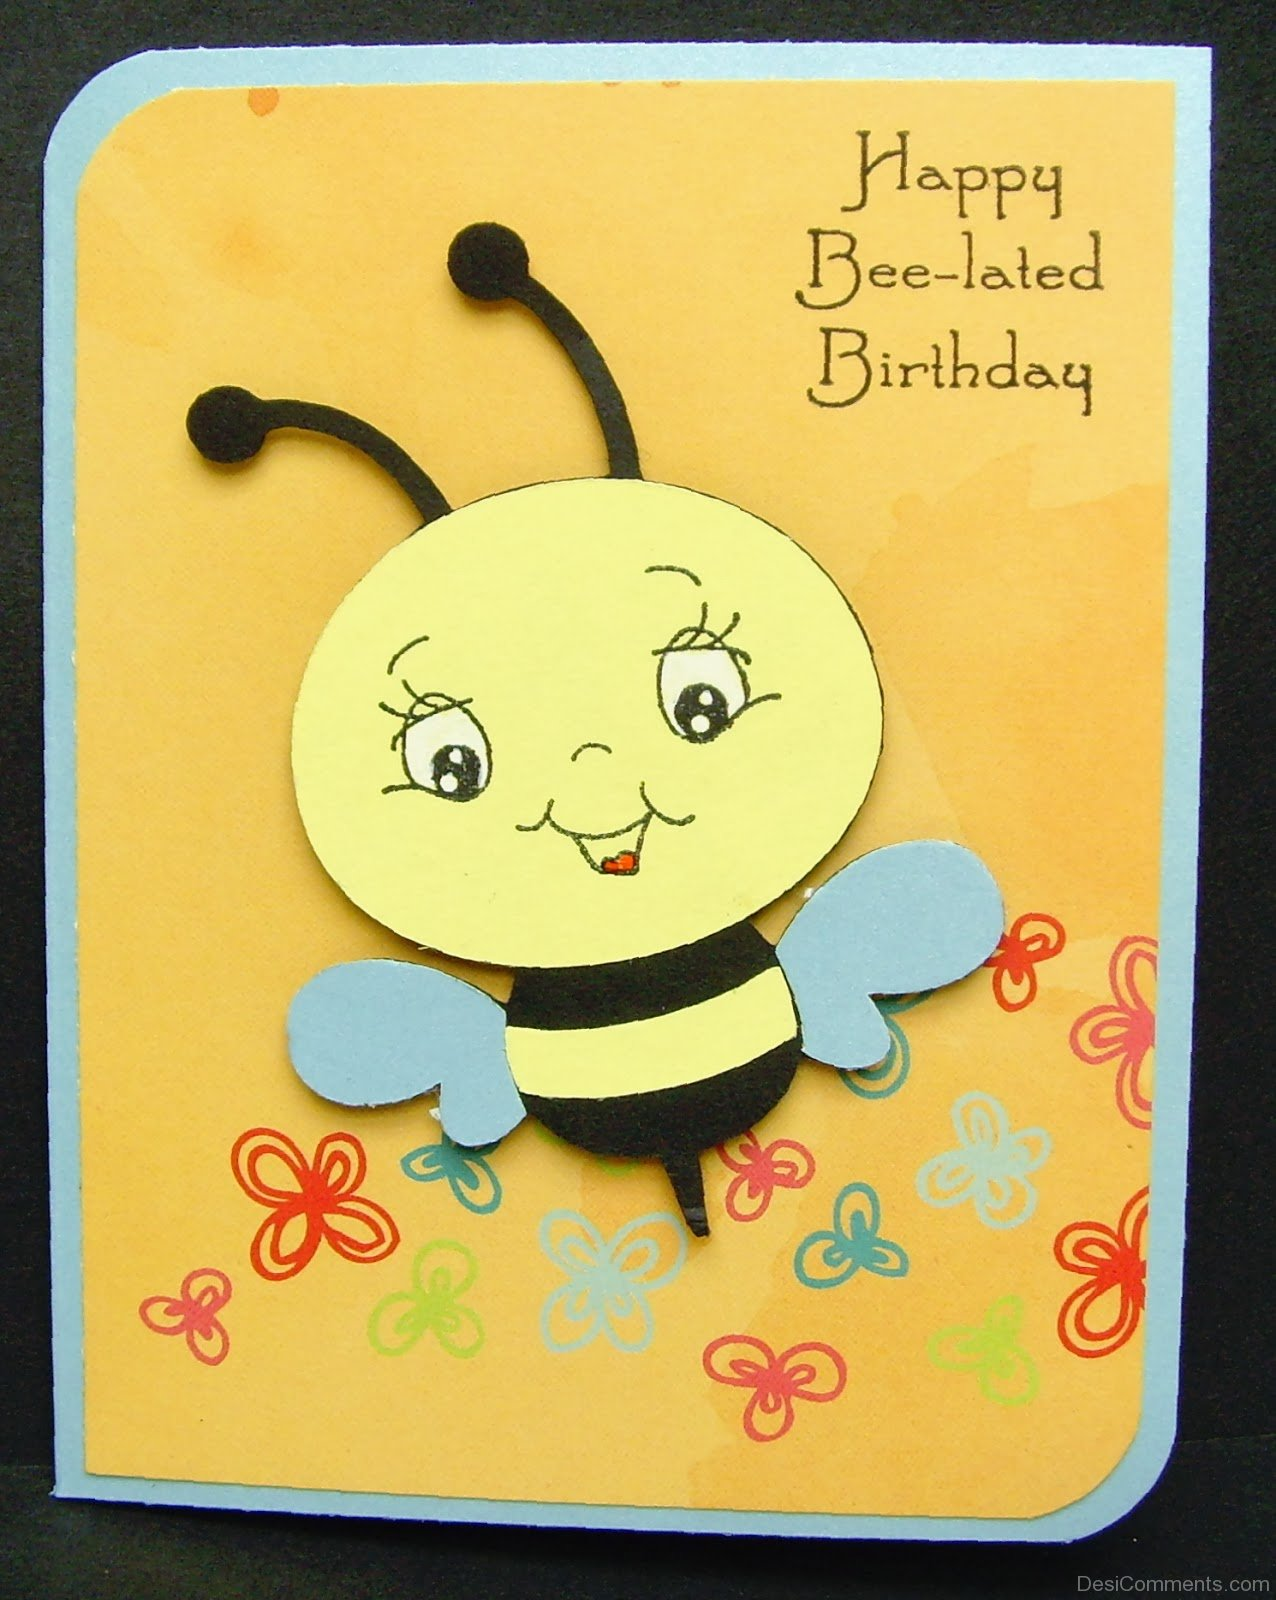 Belated Birthday Pictures Images Graphics for Facebook Whatsapp – Belated Birthday Card